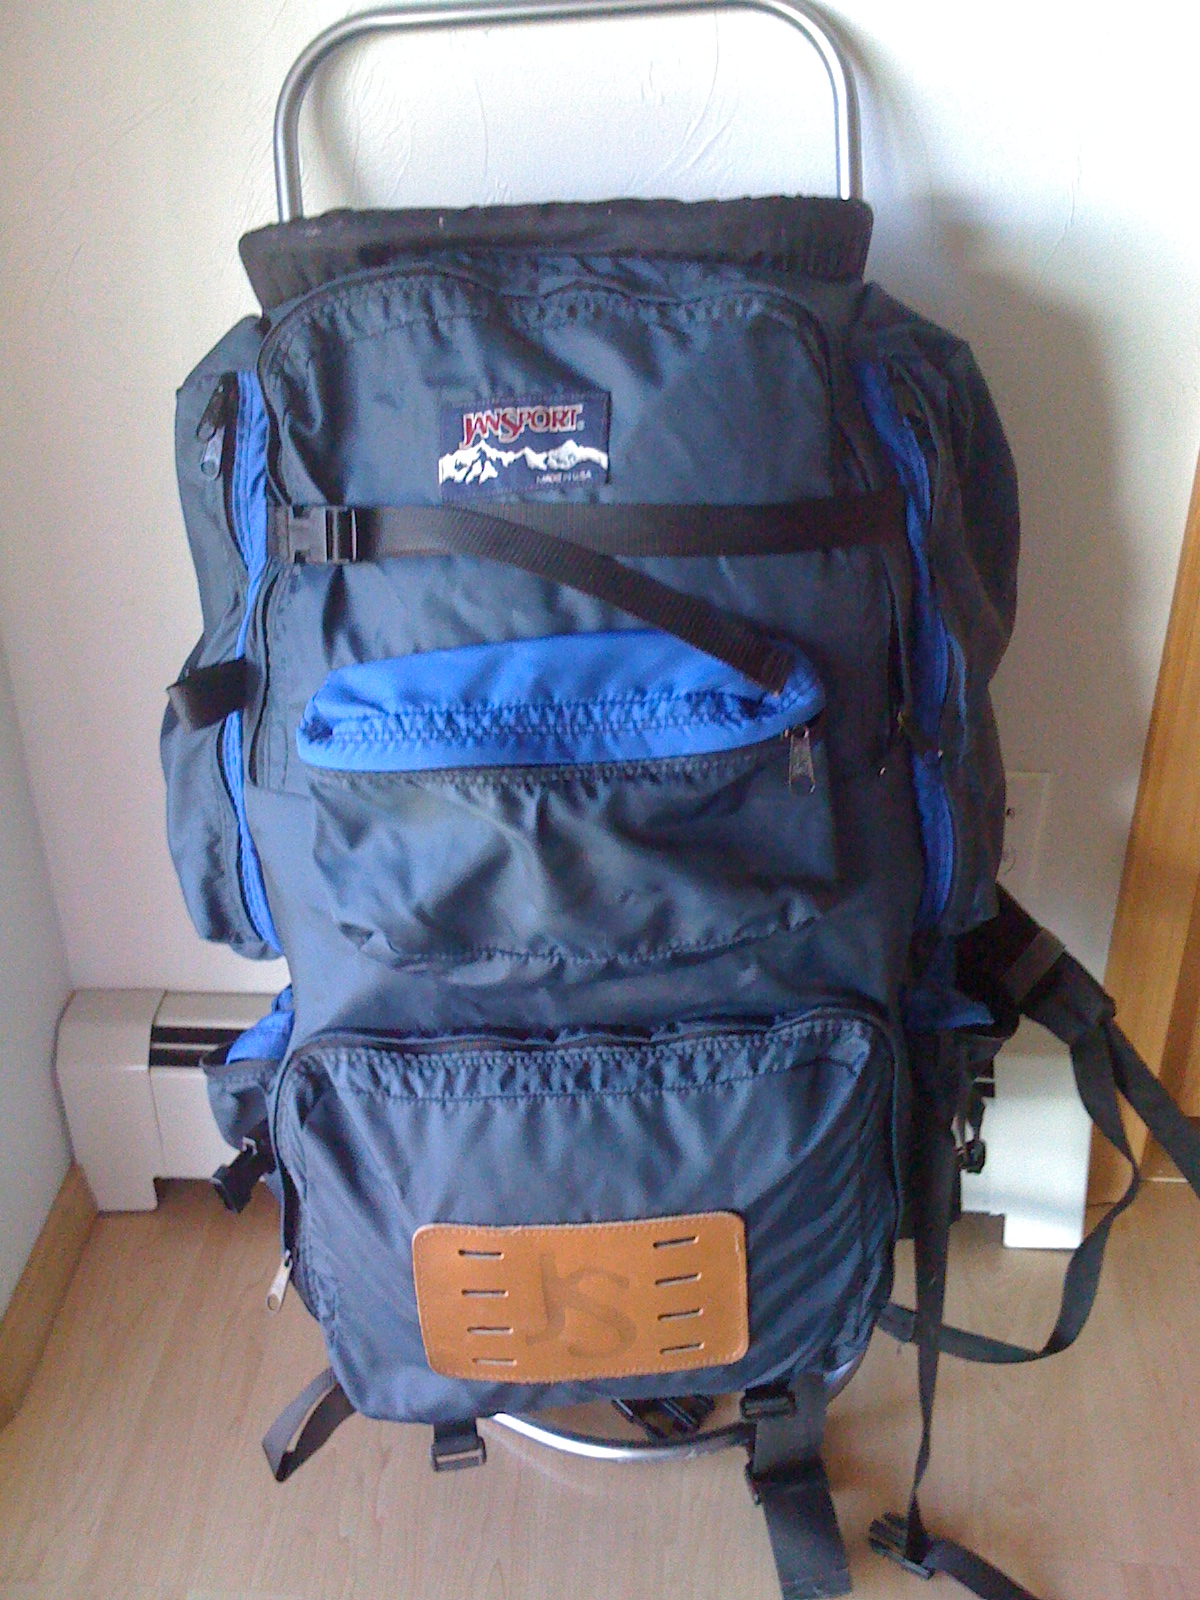 Jansport Backpacking Backpack RzxdbNb2